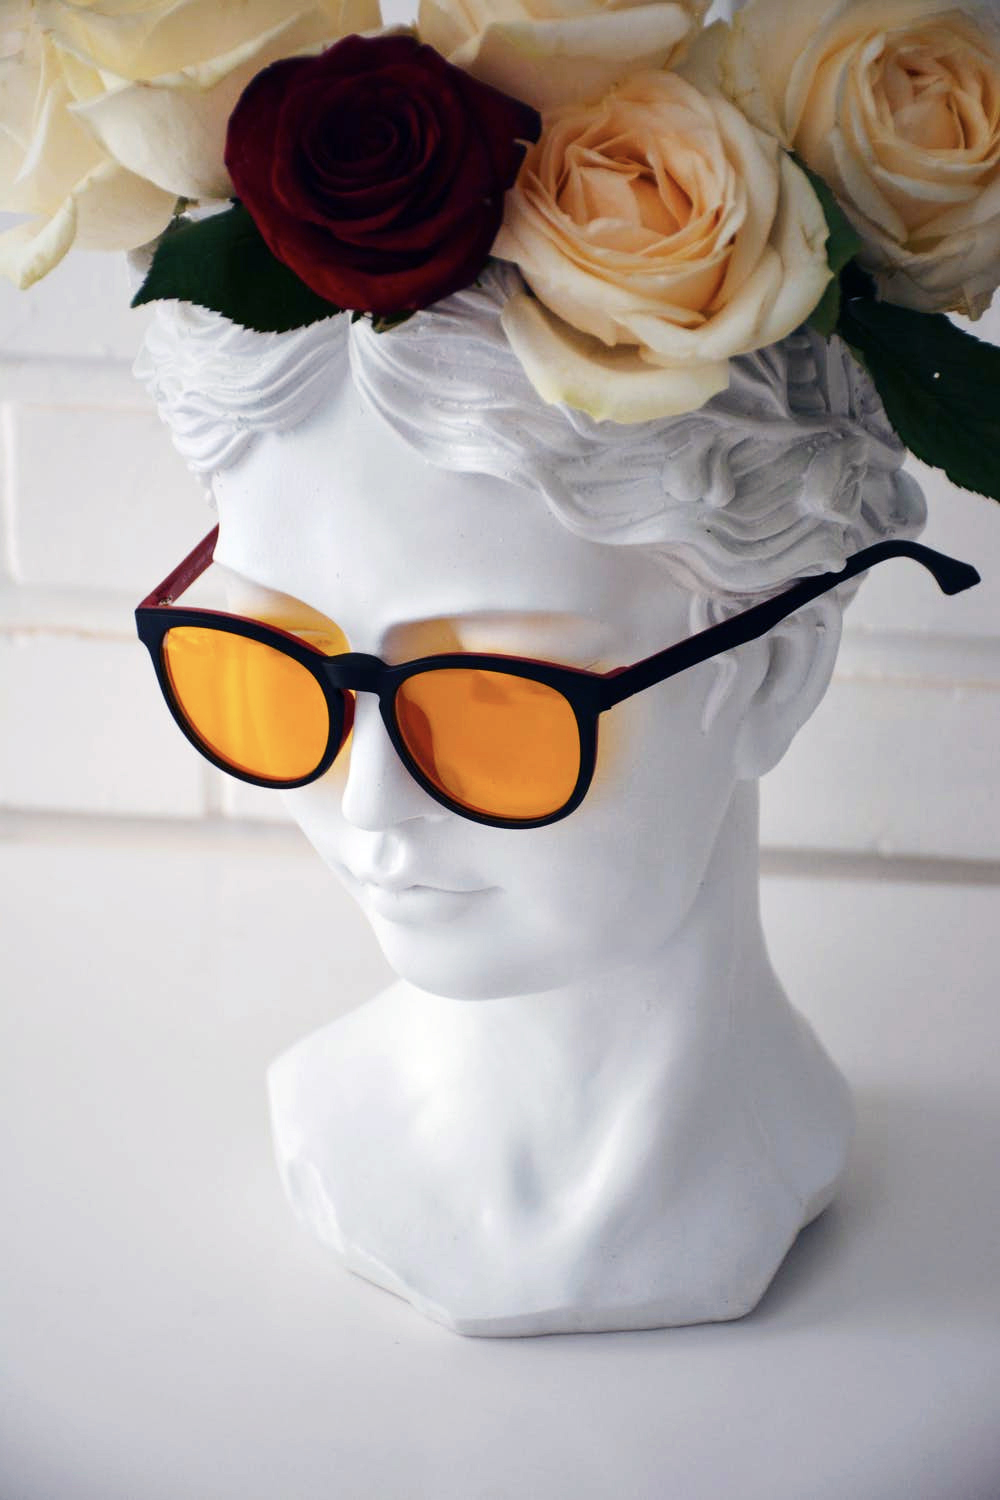 A portrait bust in a flower wreath and sunglasses